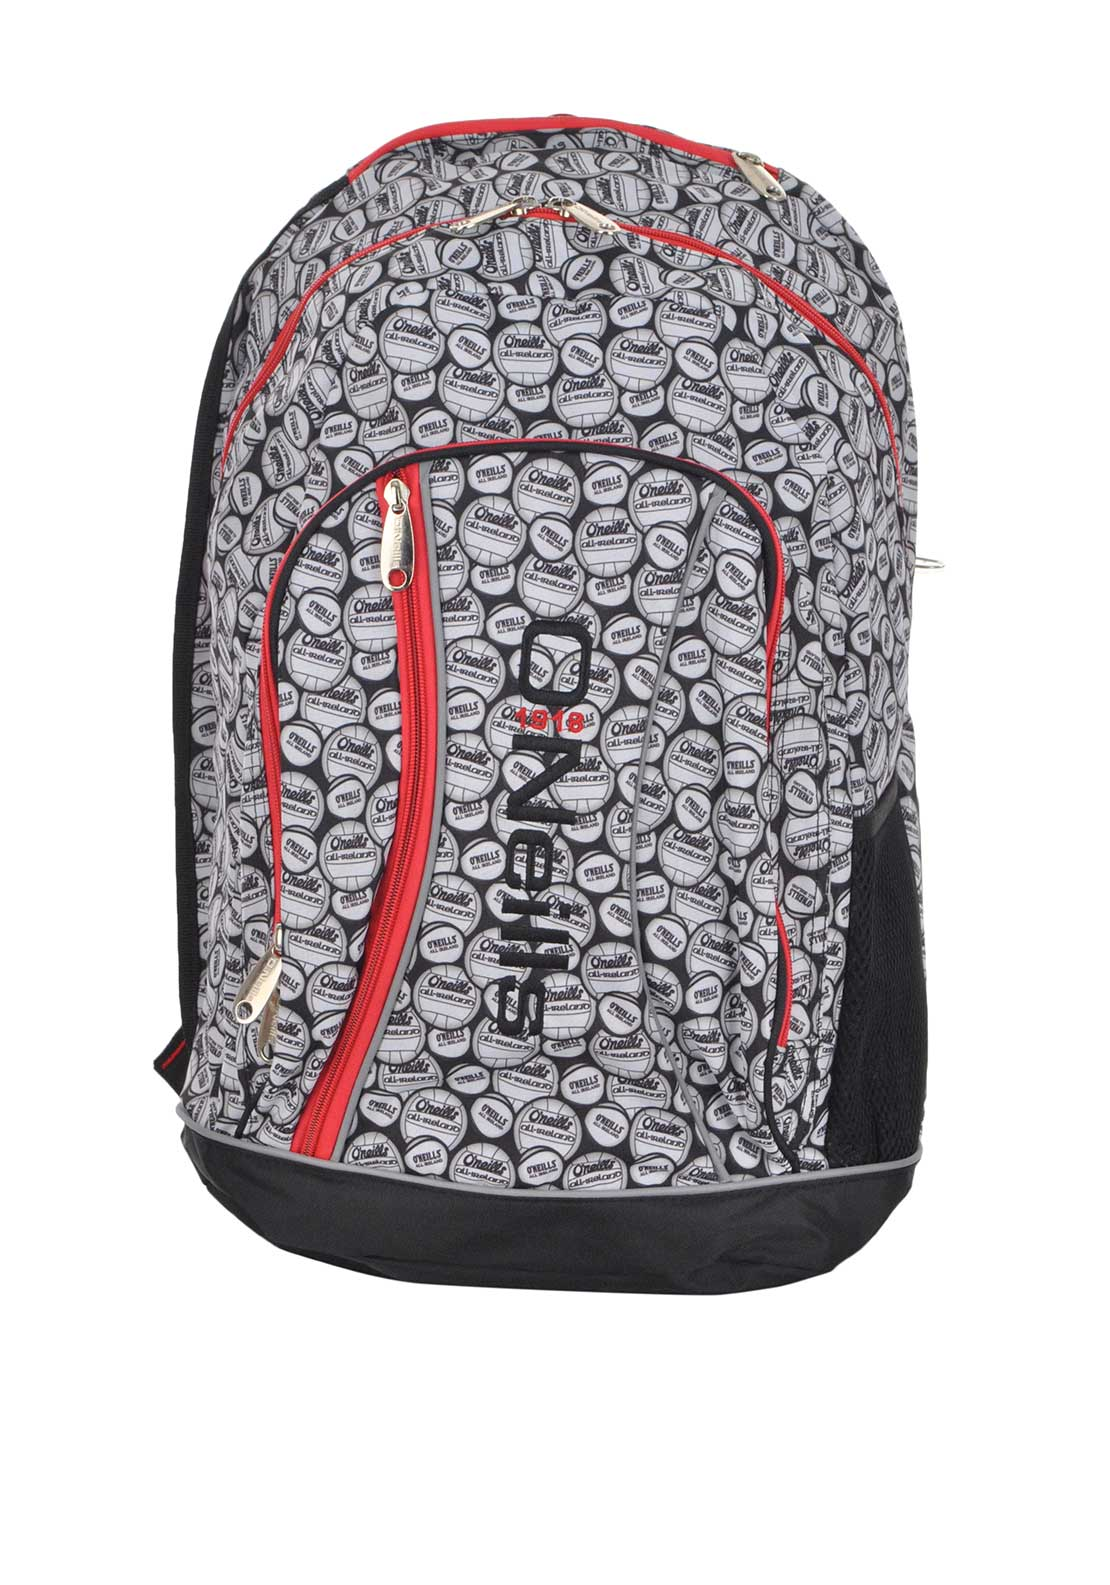 O'Neill's Printed Balls Marley Back Pack School Bag, Black and Red